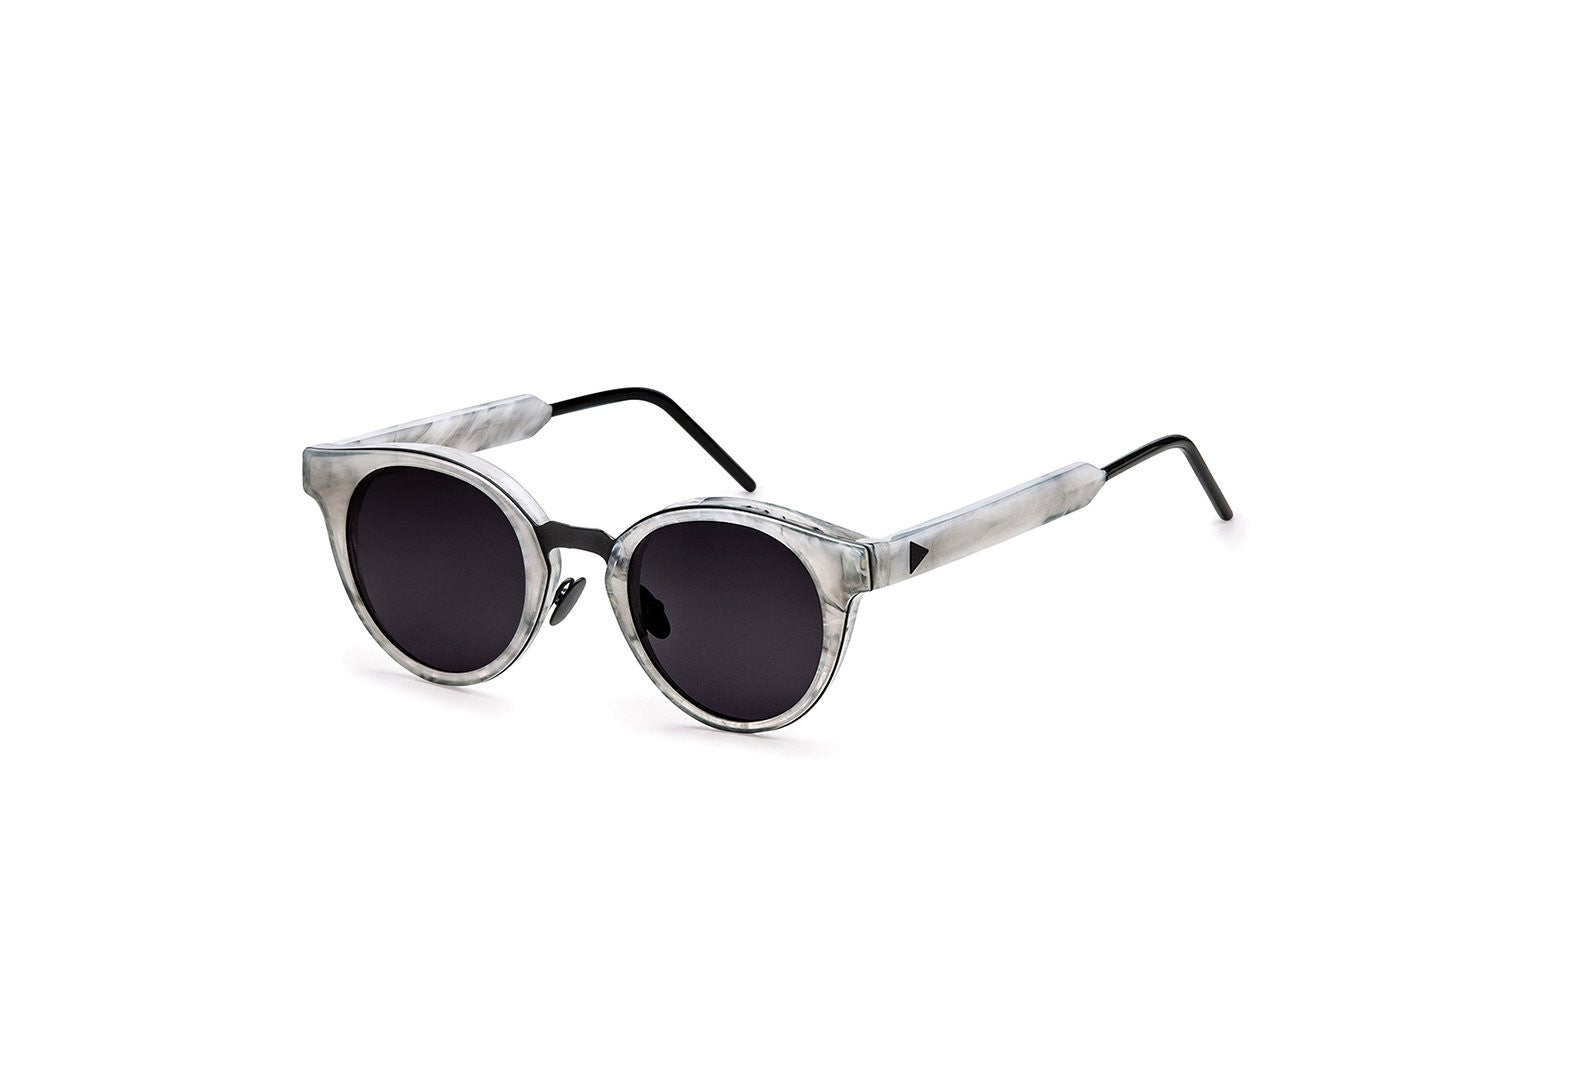 Williams Sunglasses